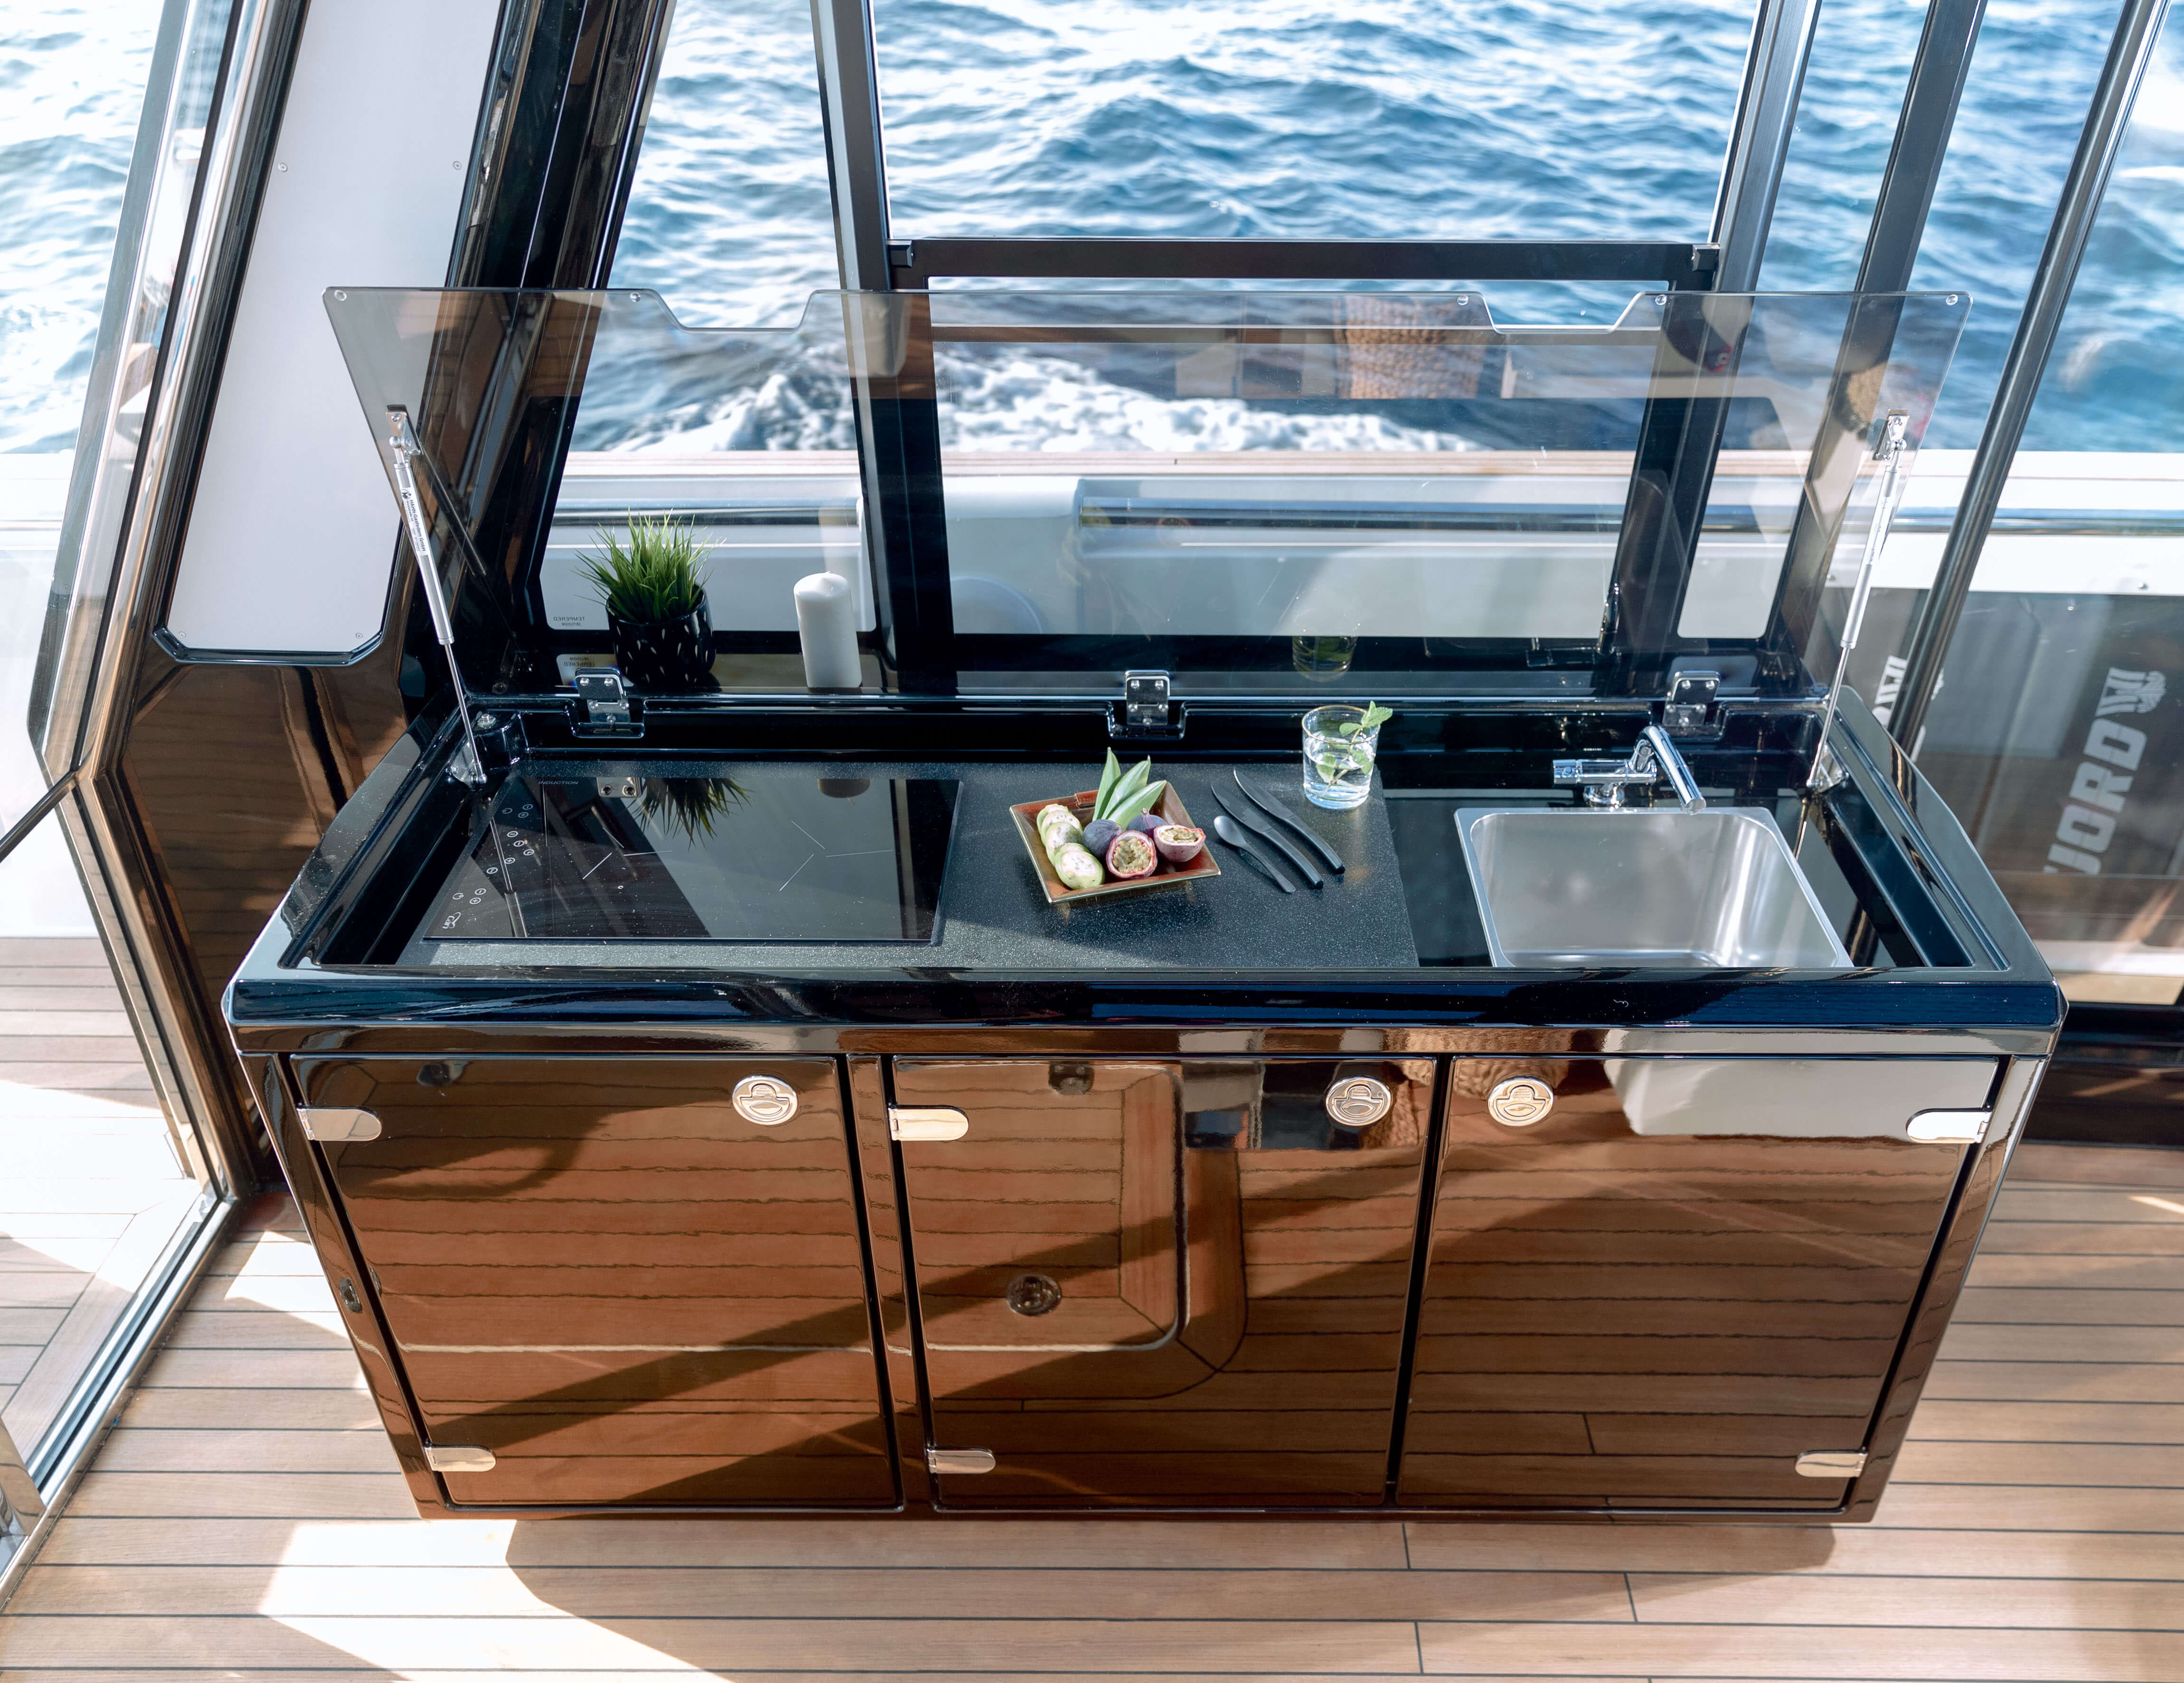 FJORD 44 coupé galley | The saloon galley can be used to fulfill your guests' every culinary wish. | Fjord